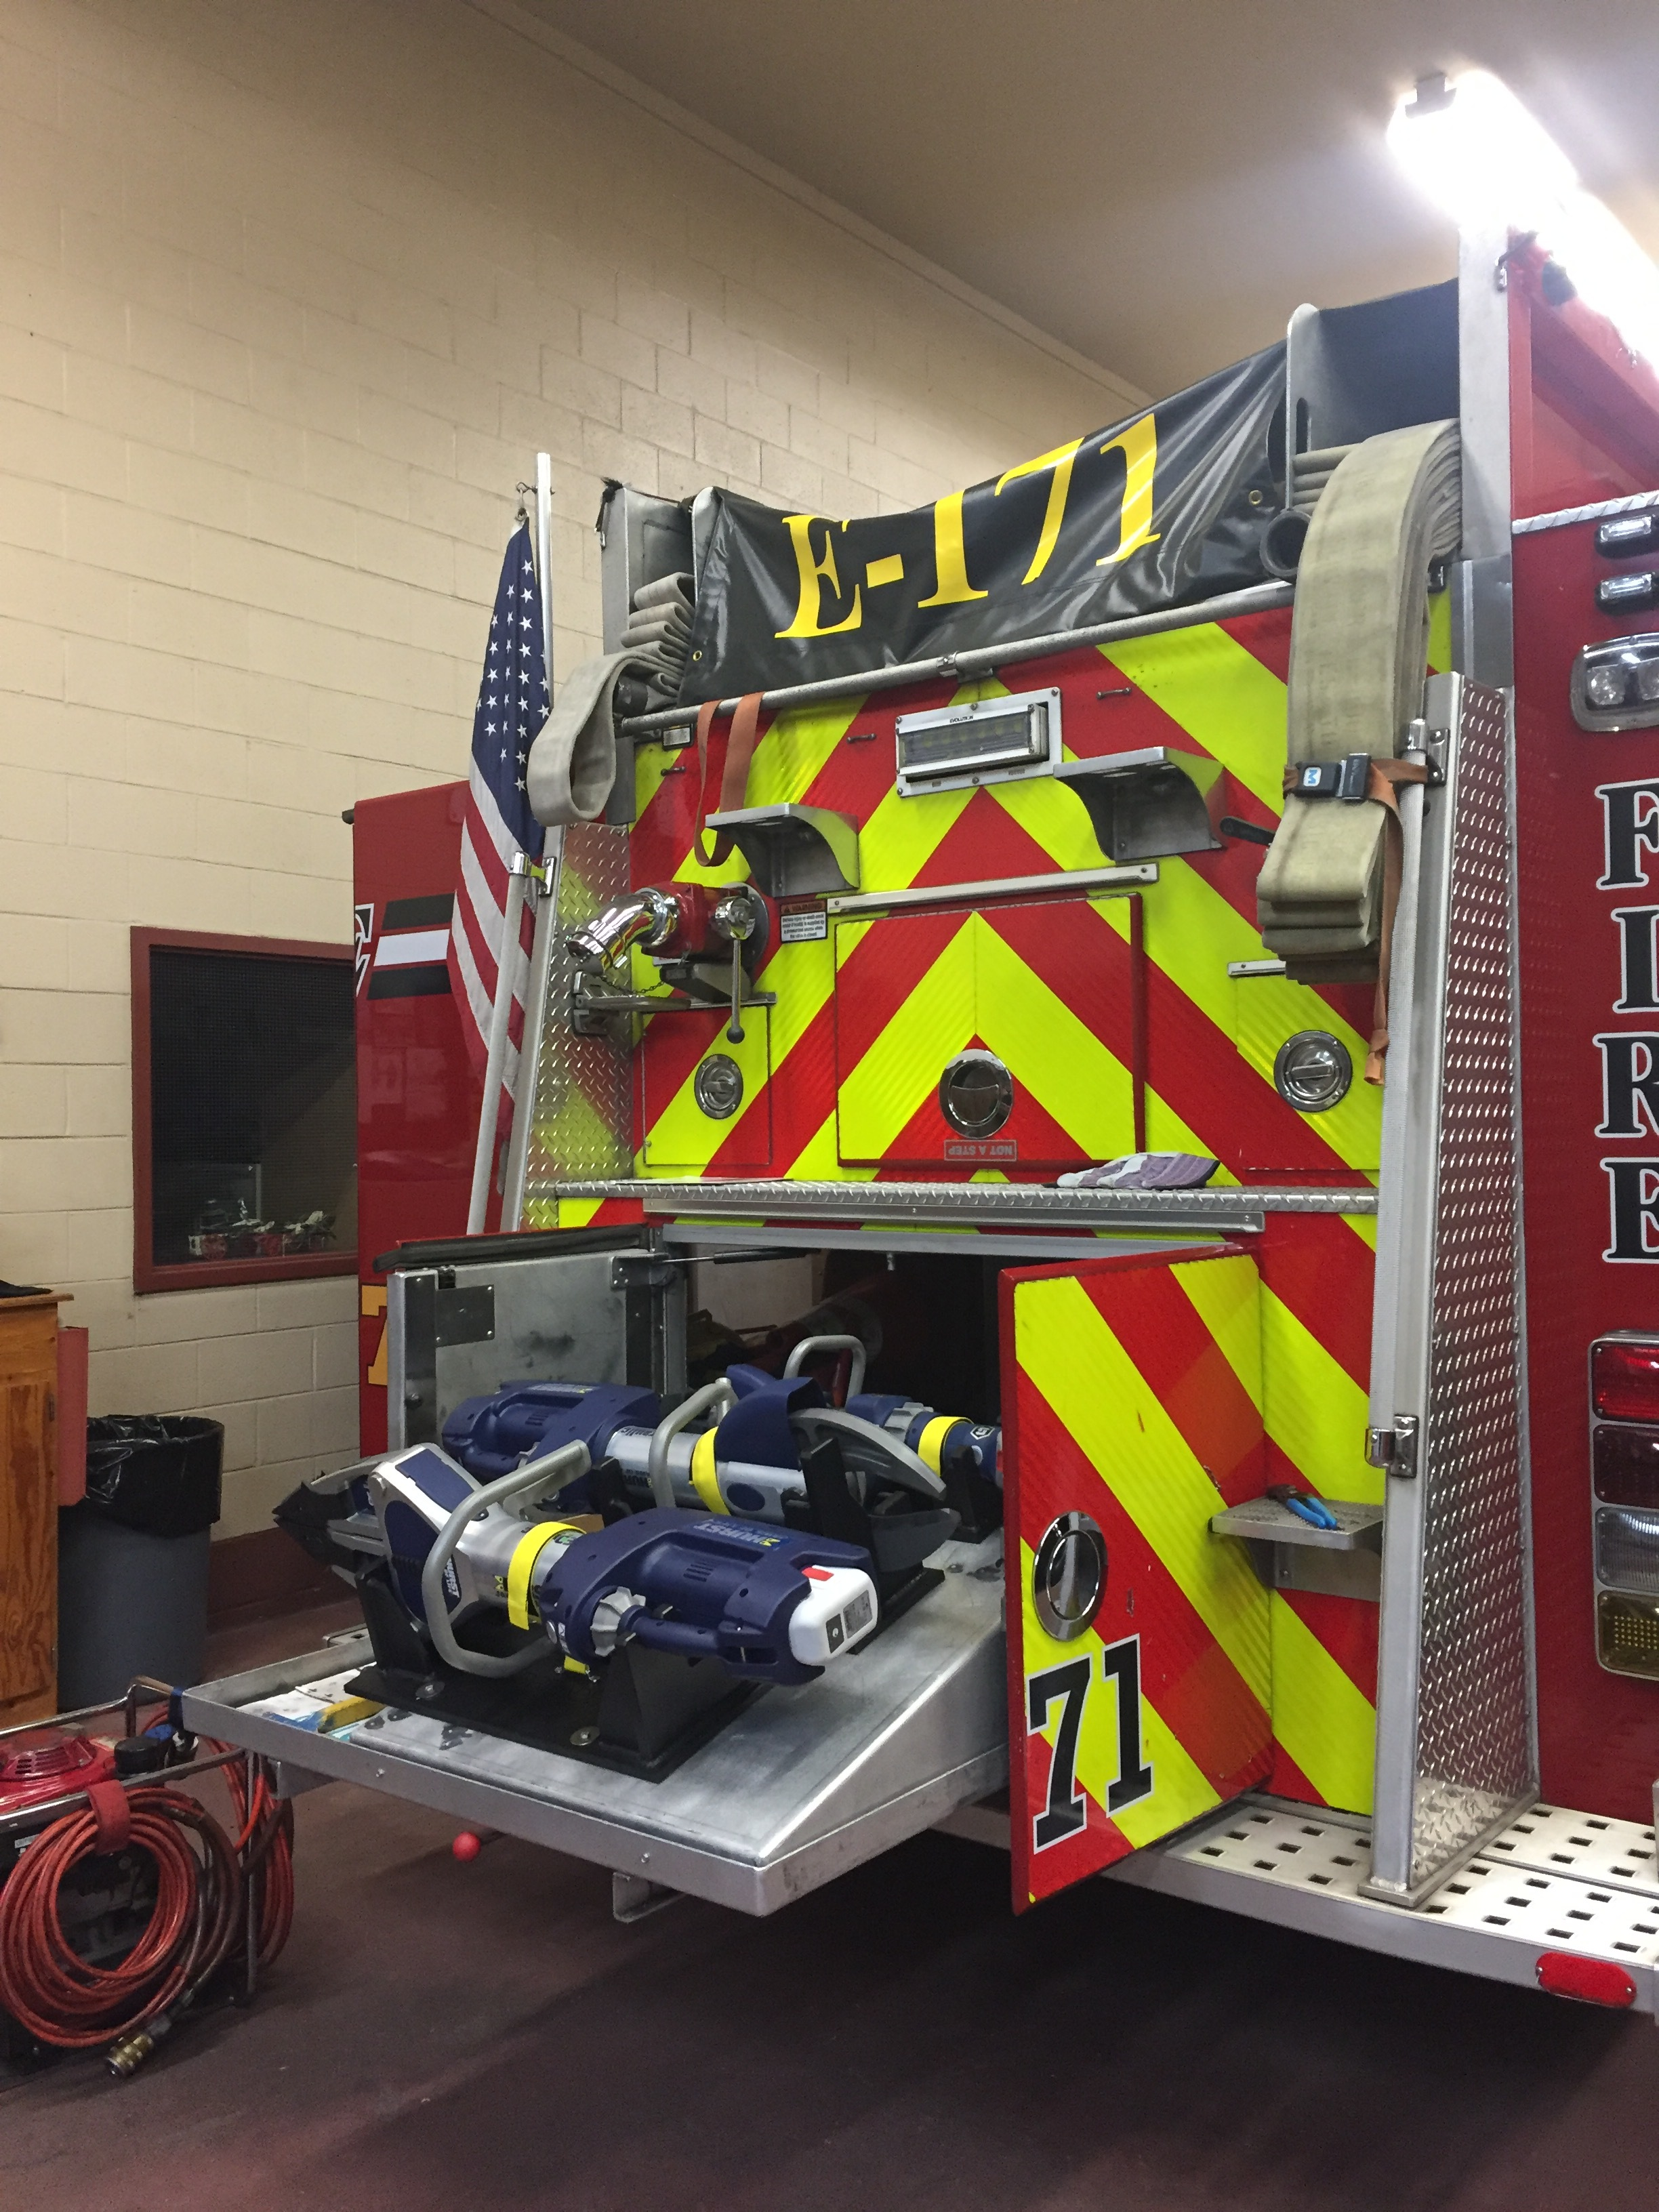 Some of the extrication equipment that Engine 171 carries.